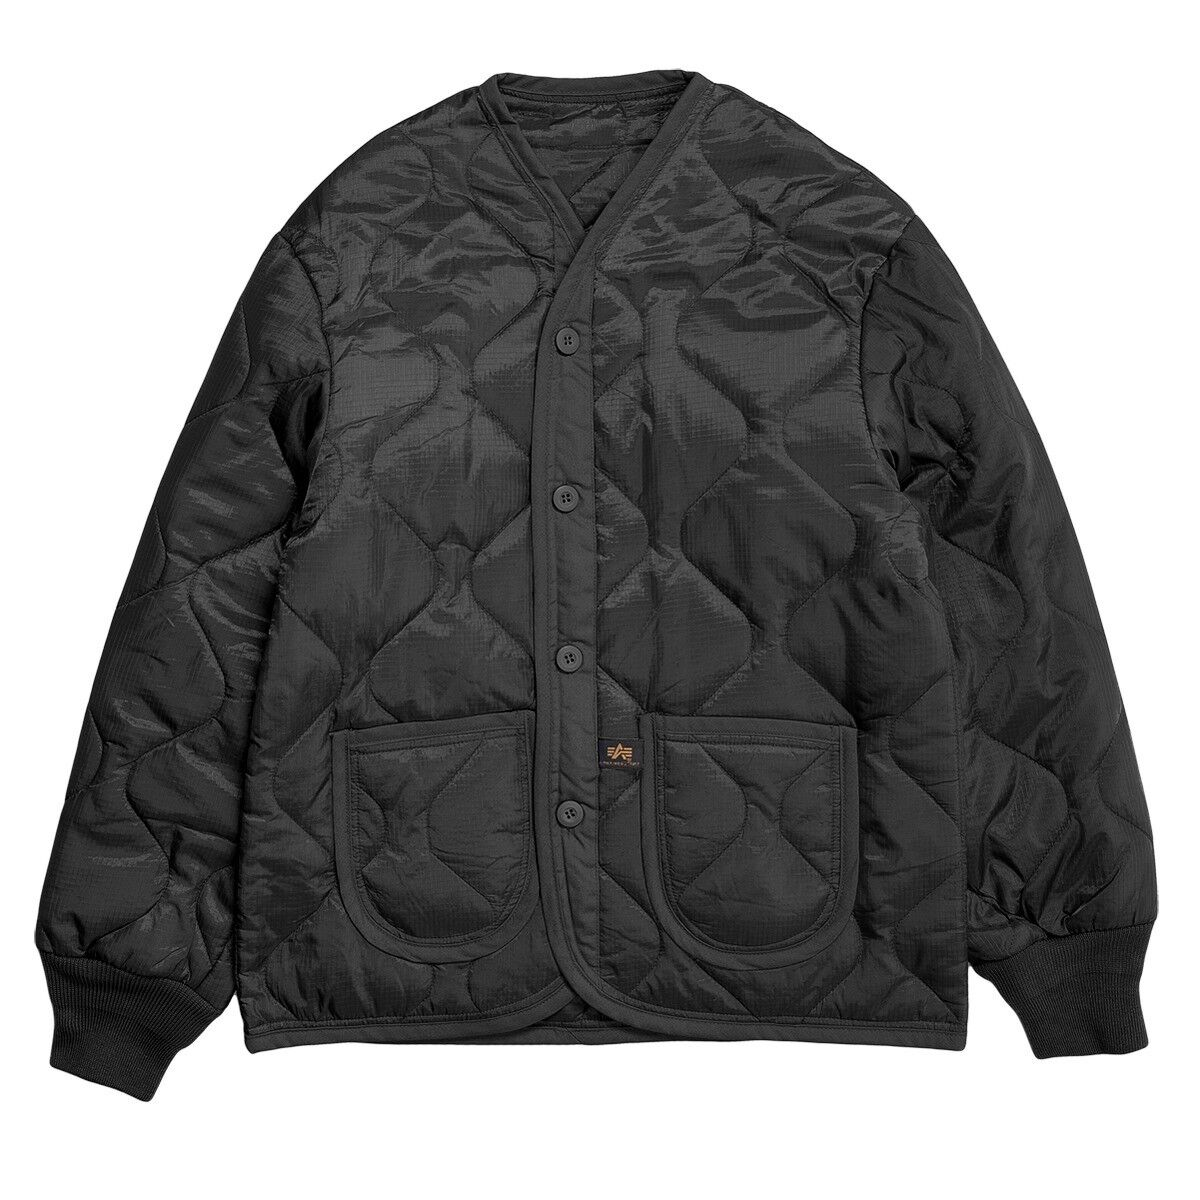 Alpha Industries ALS 92 Liner for M-65 Coat  MJL48000C1 M65